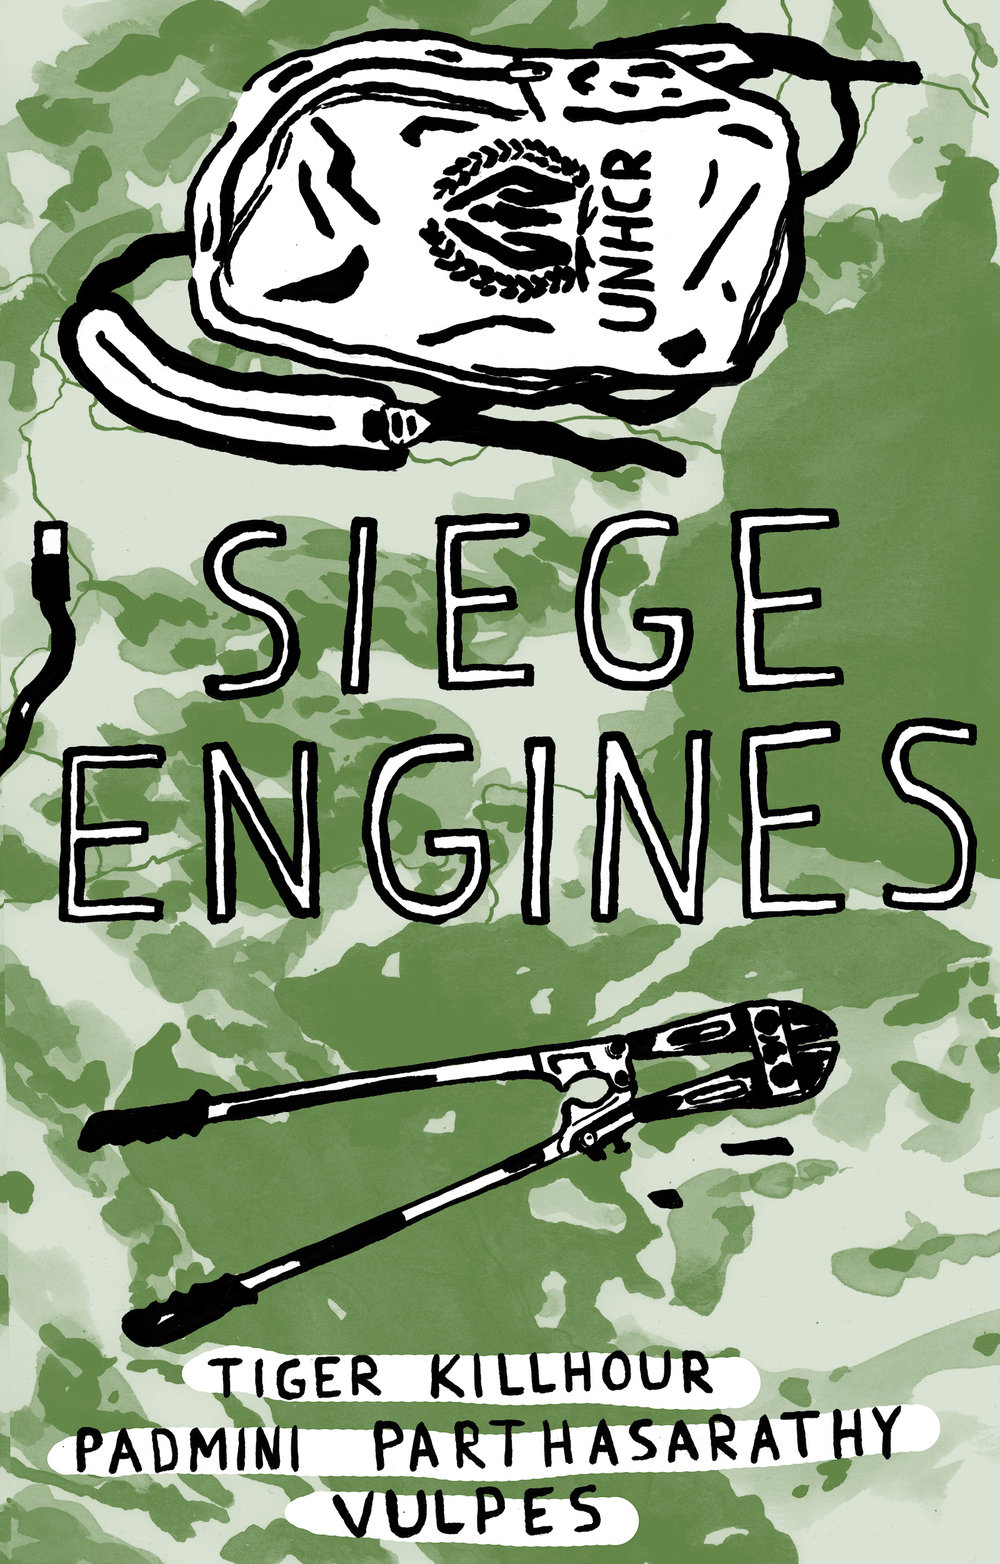 "Siege Engines   Siege Engines is a comic created by Tiger Killhour, Padmini Parthasarathy and Vulpes. It focuses on the struggle of migrants passing through the so-called ""Balkan Route"" and the decentralized, horizontal mutual aid networks along the way."